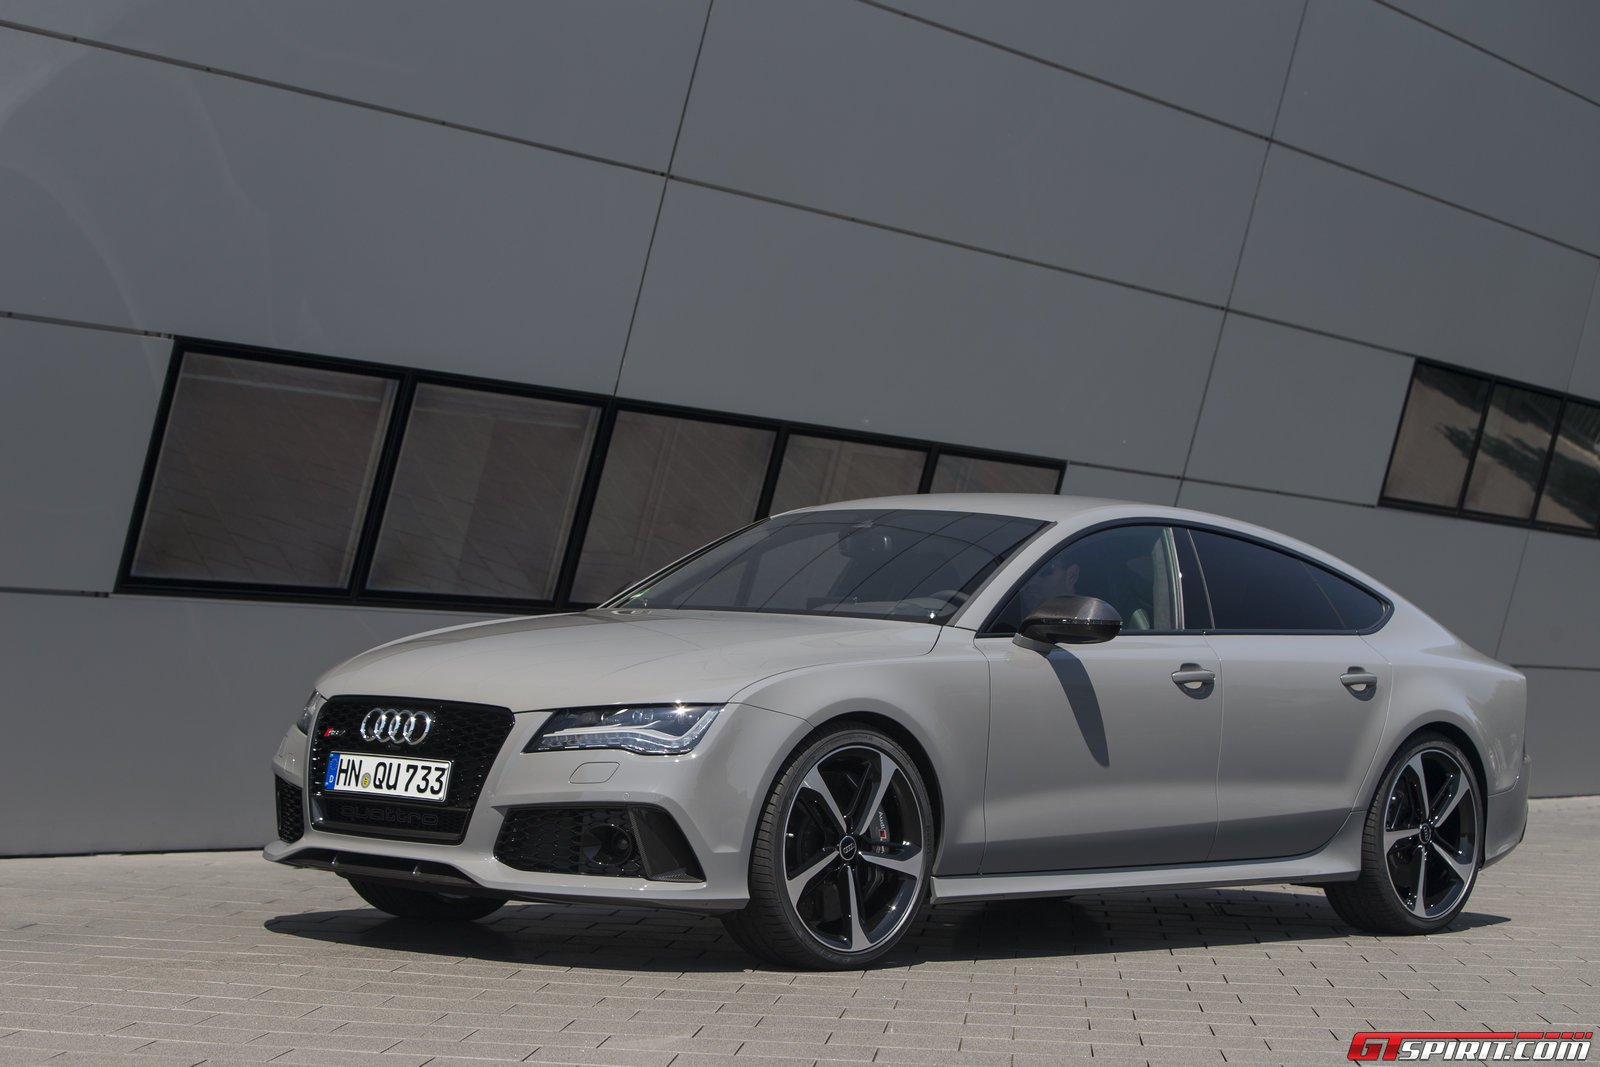 The Turbo Engineers >> Road Test: 2014 Audi RS7 Review